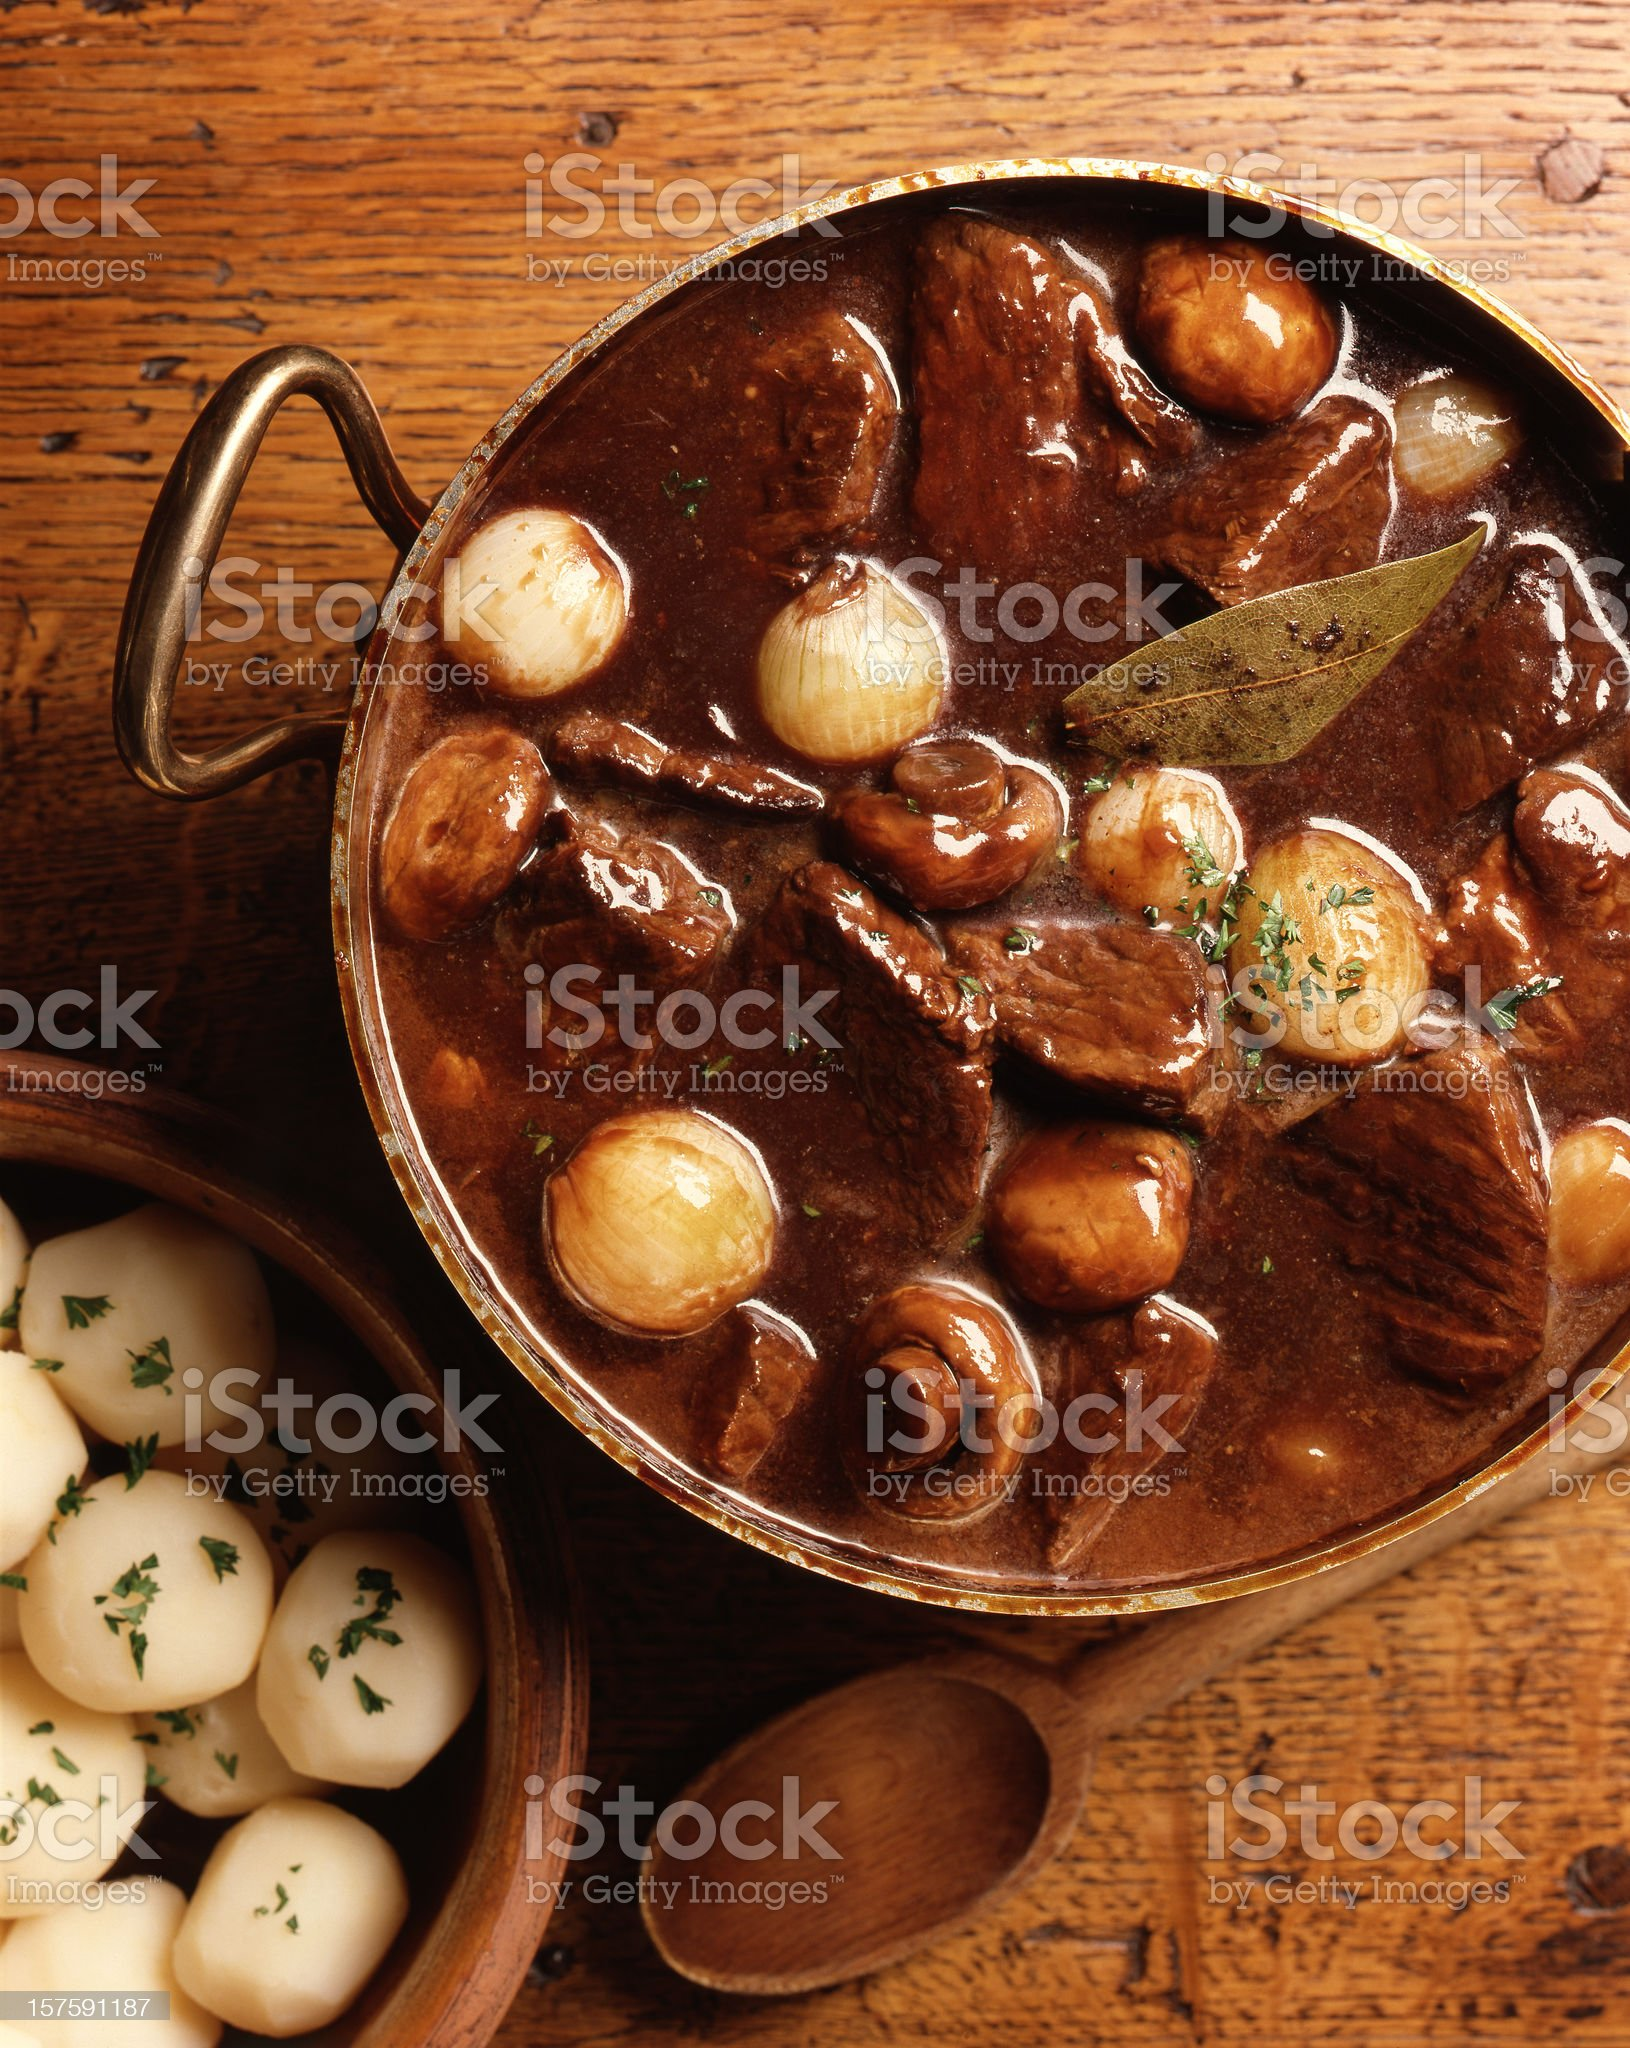 Overhead view of traditional French beef burgundy dish royalty-free stock photo